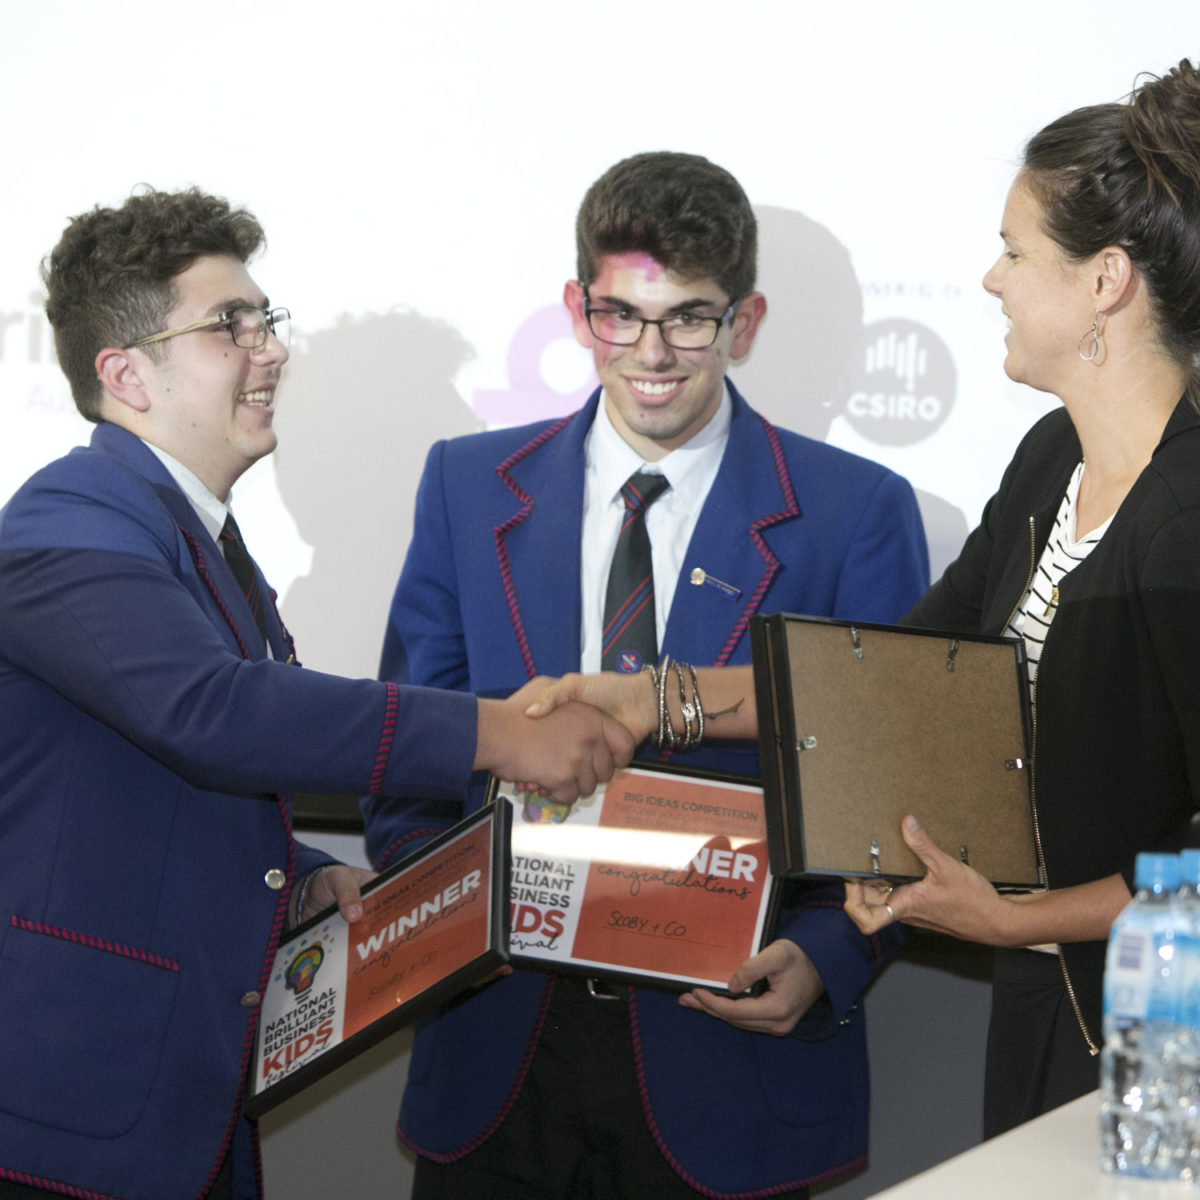 Marcellin College students receive their certificates